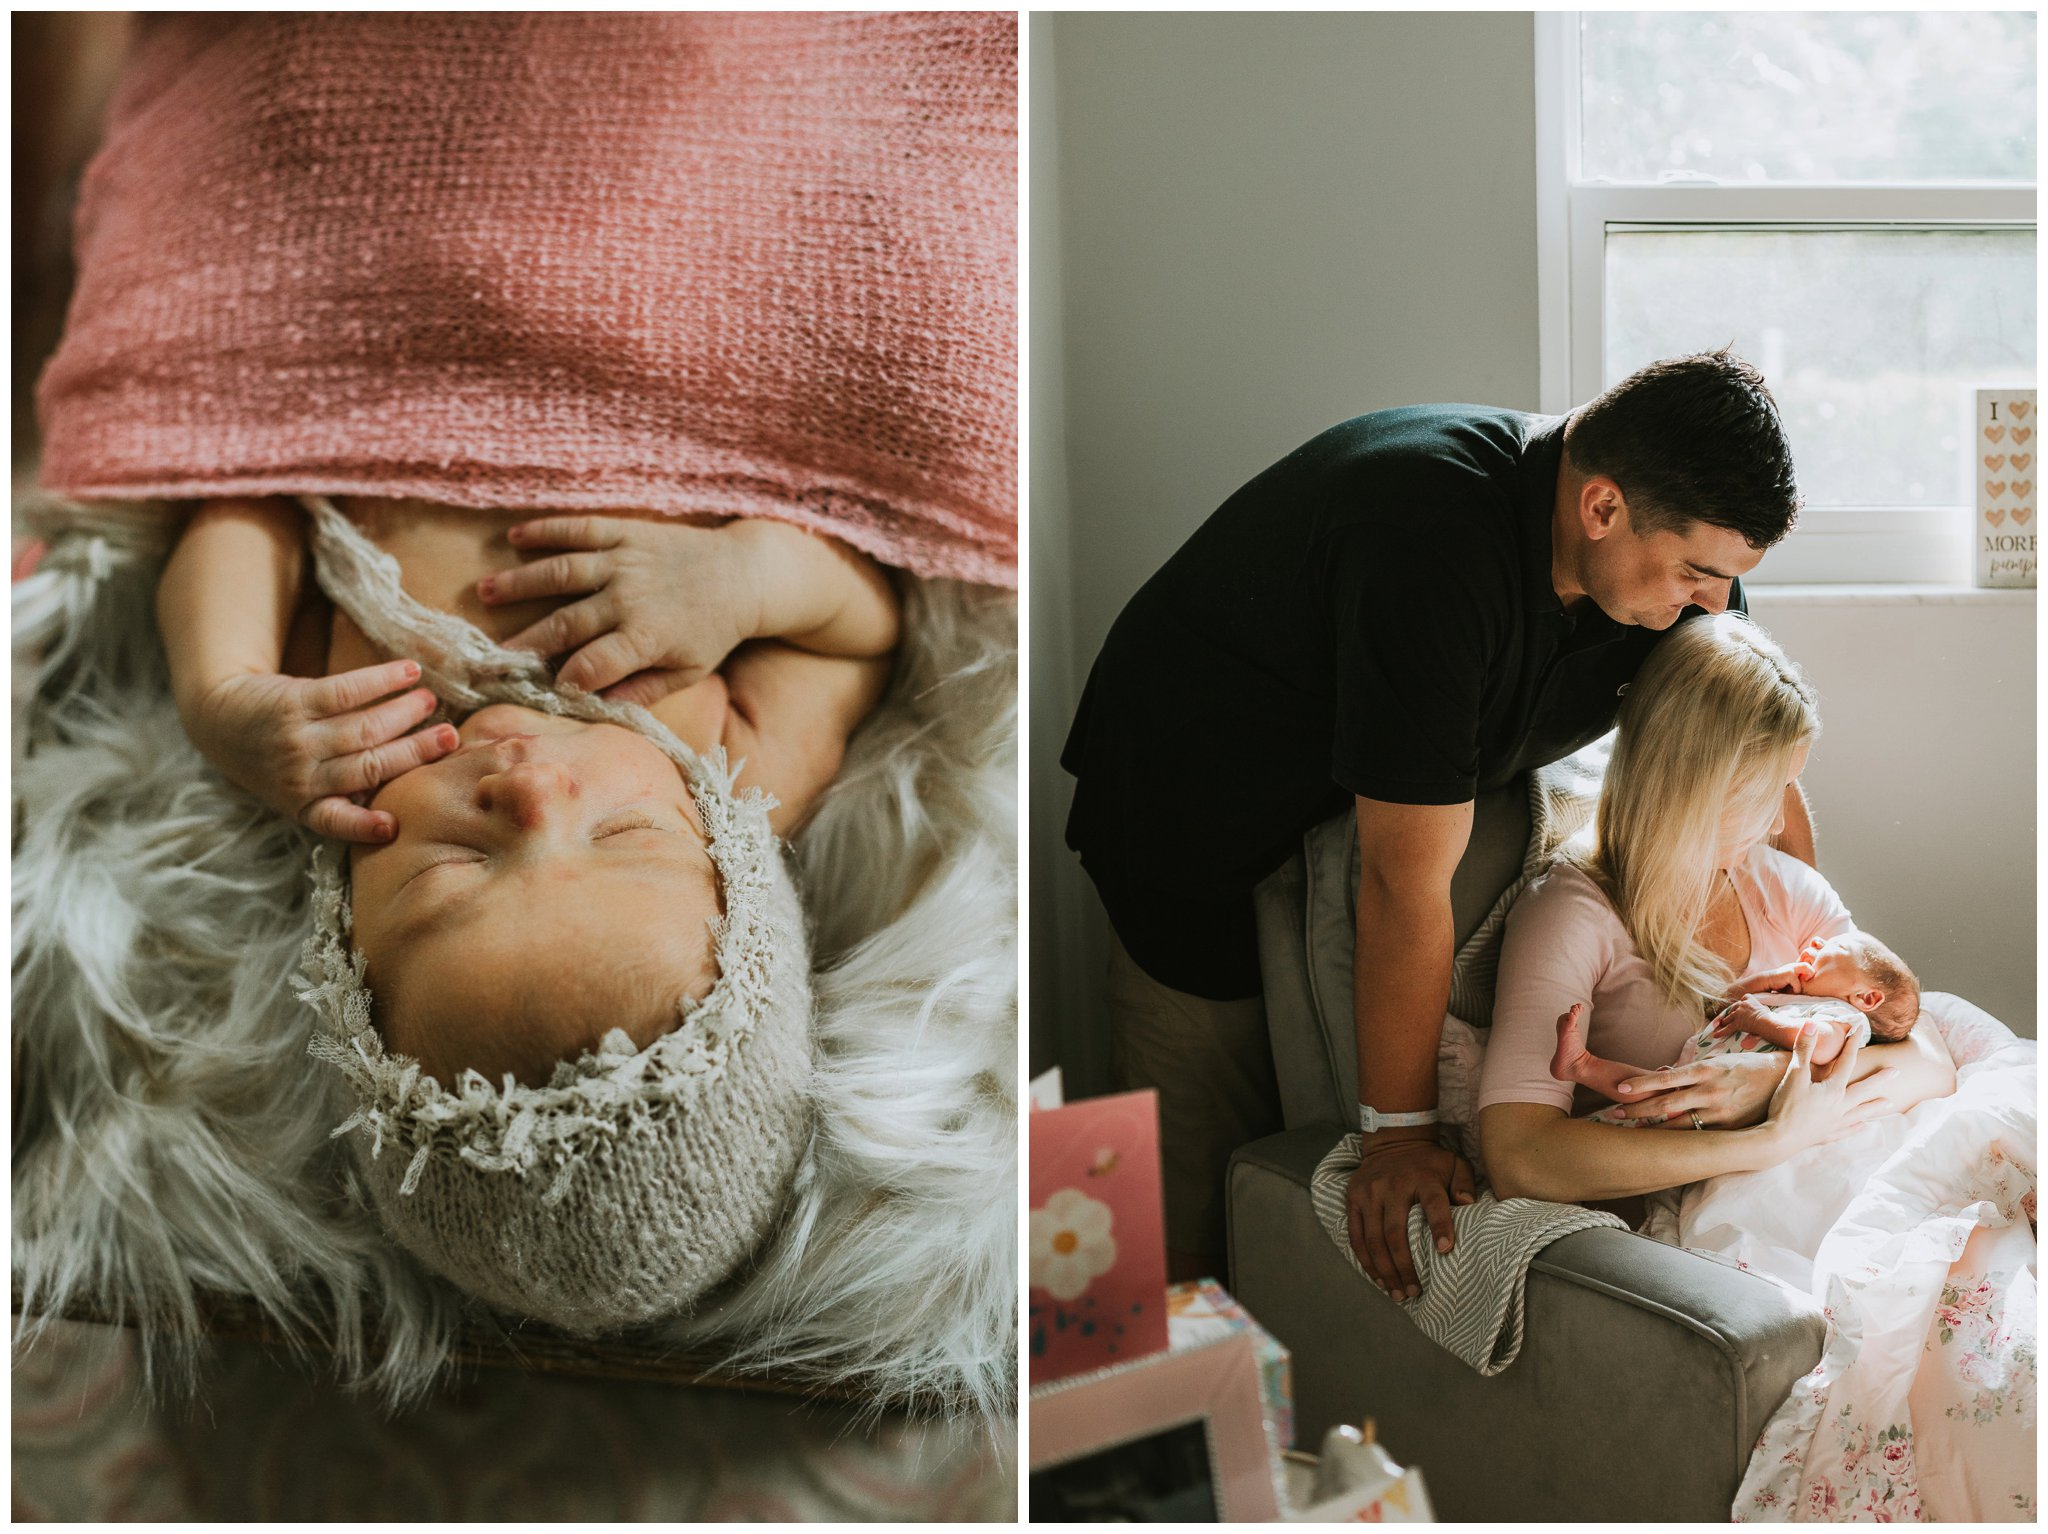 Kimberly Smith Photography| Home Photography| Home Sessions| Jupiter Florida Photographer| Newborn Photos| Jupiter Newborn Photographer_0004.jpg